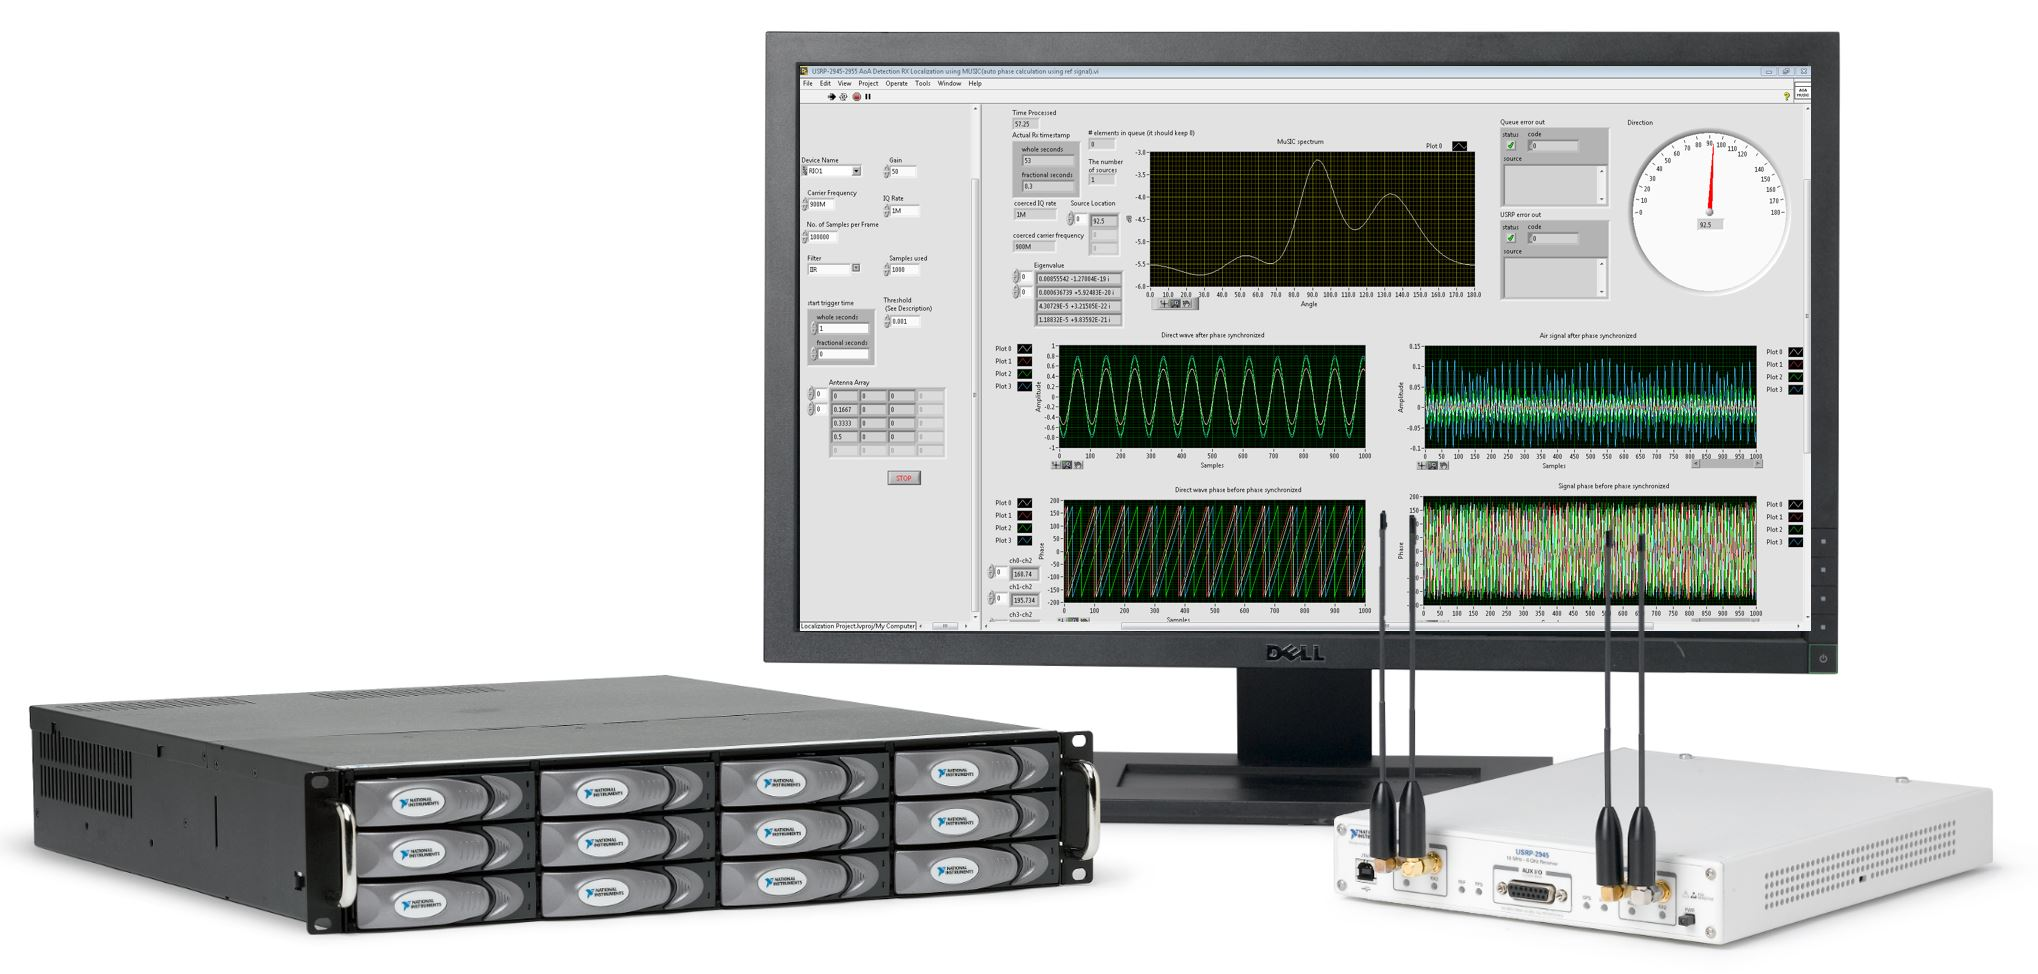 USRP 2945 and RAID Array NI Announces the Next Generation of USRP RIO Software Defined Radio Solutions for Design